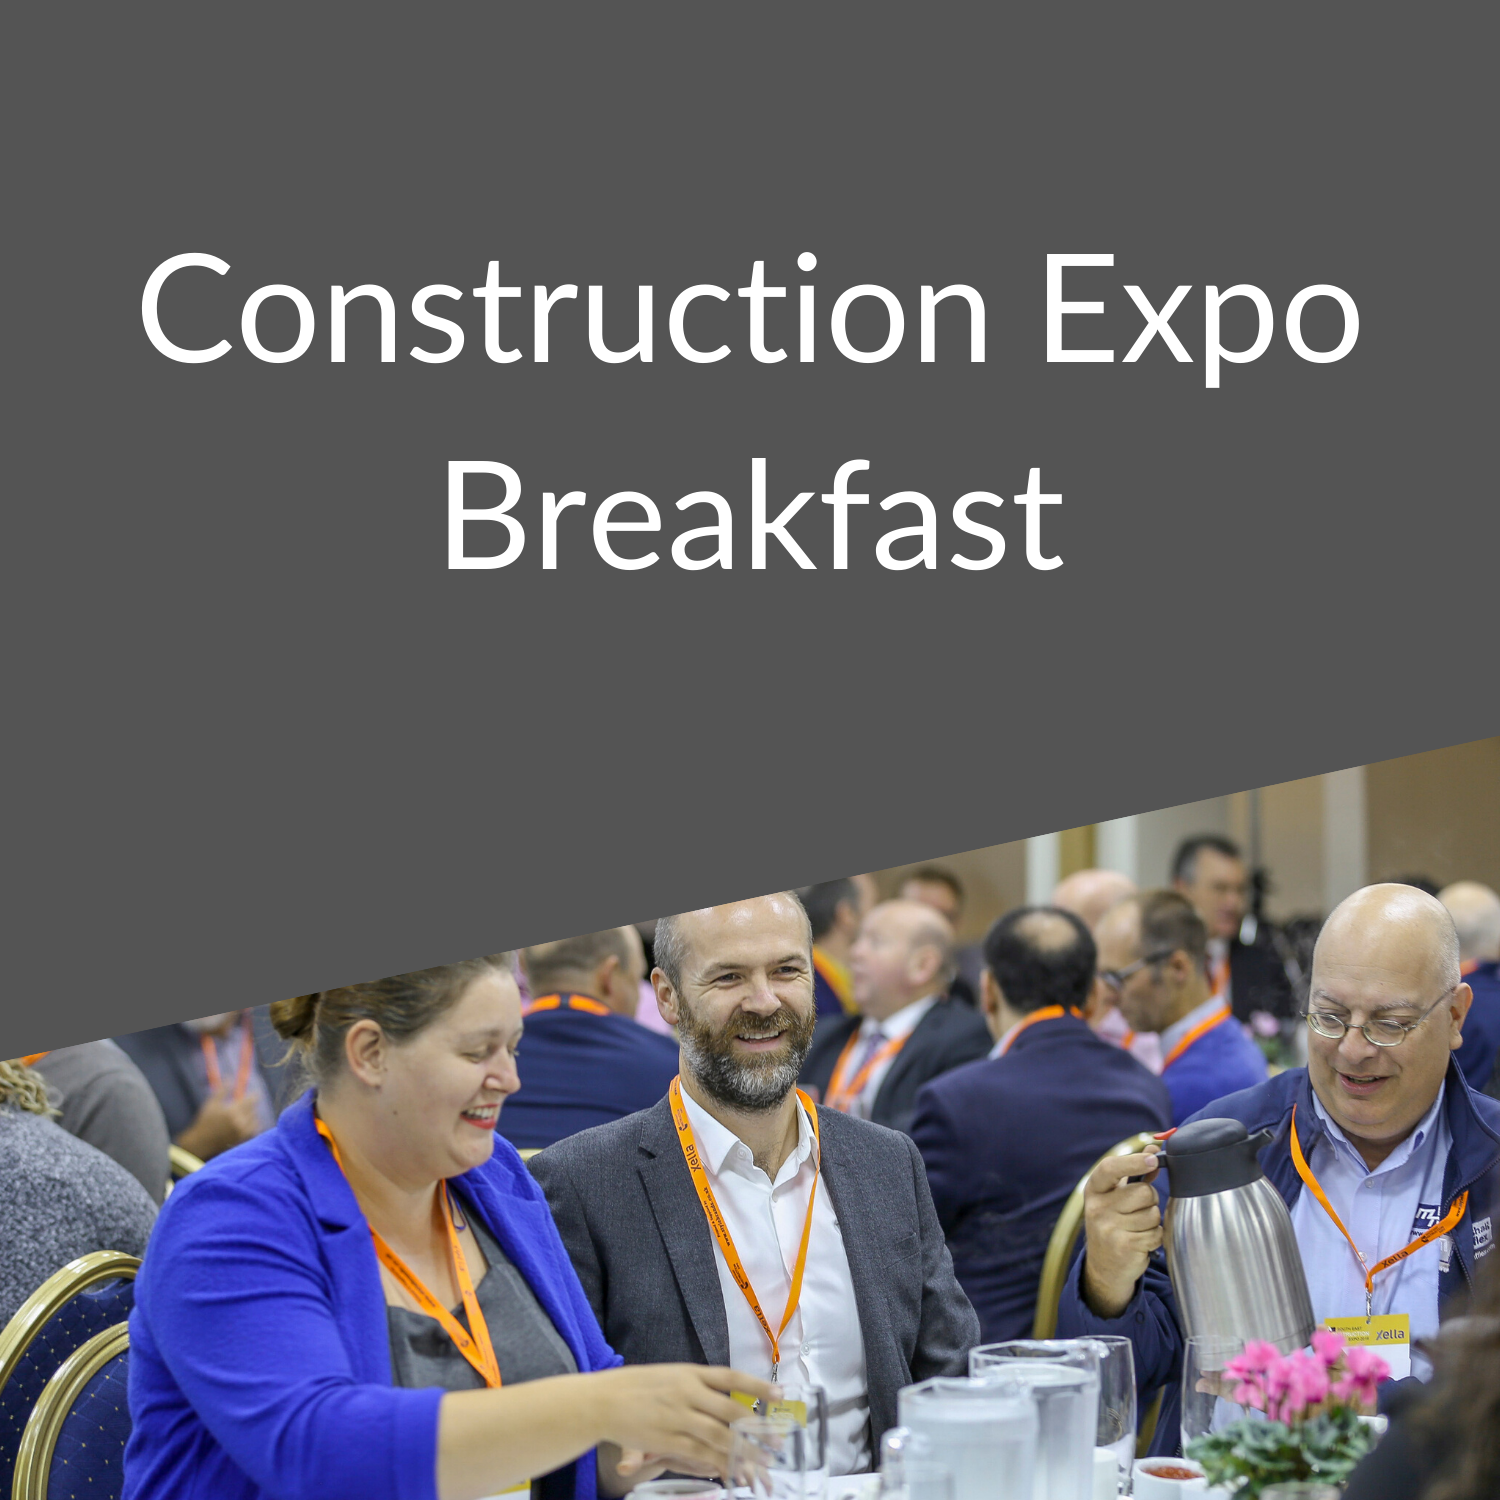 South East Construction Expo Breakfast